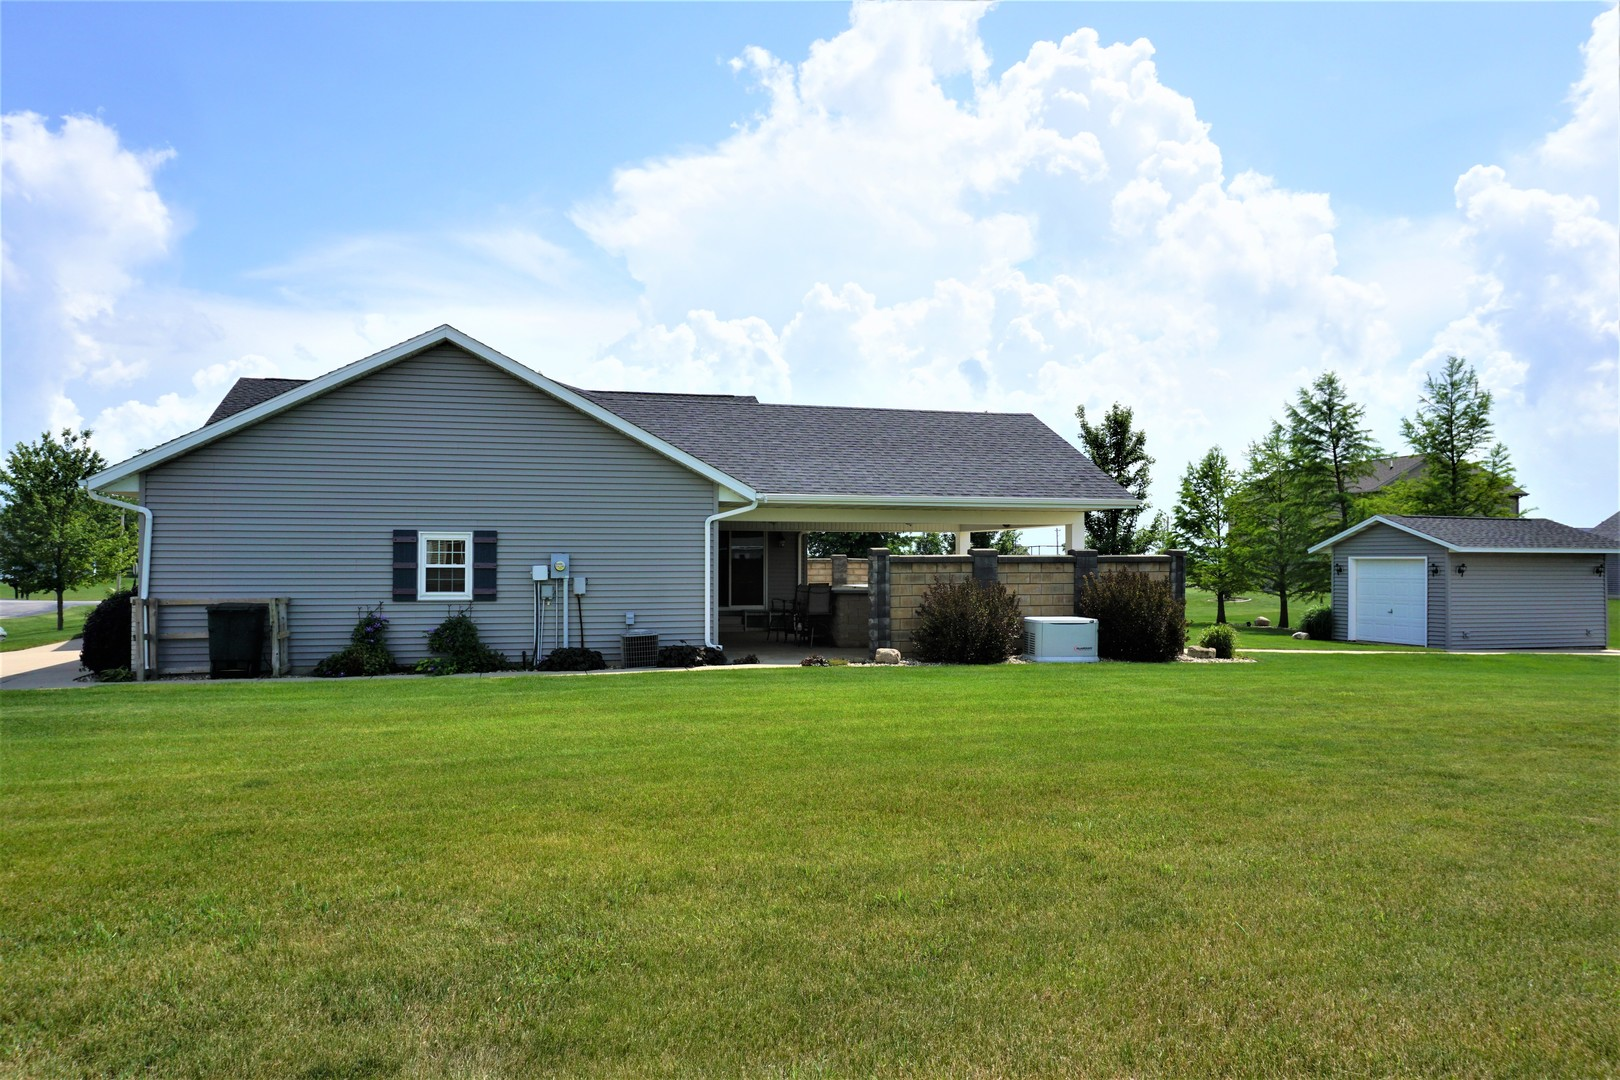 503 North West, Gifford, Illinois, 61847